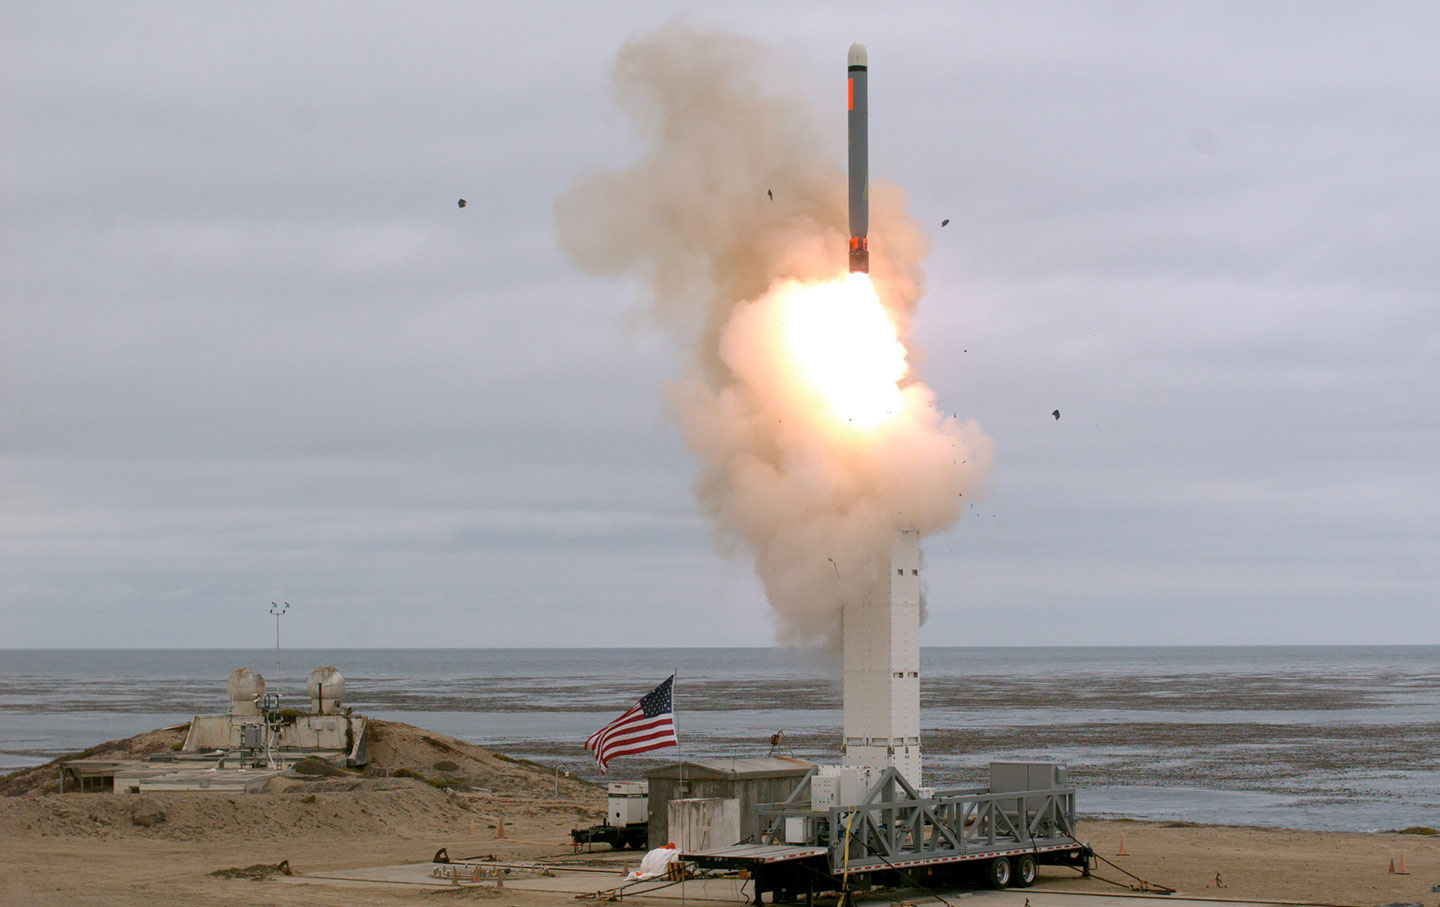 Department of Defense ground missile launch